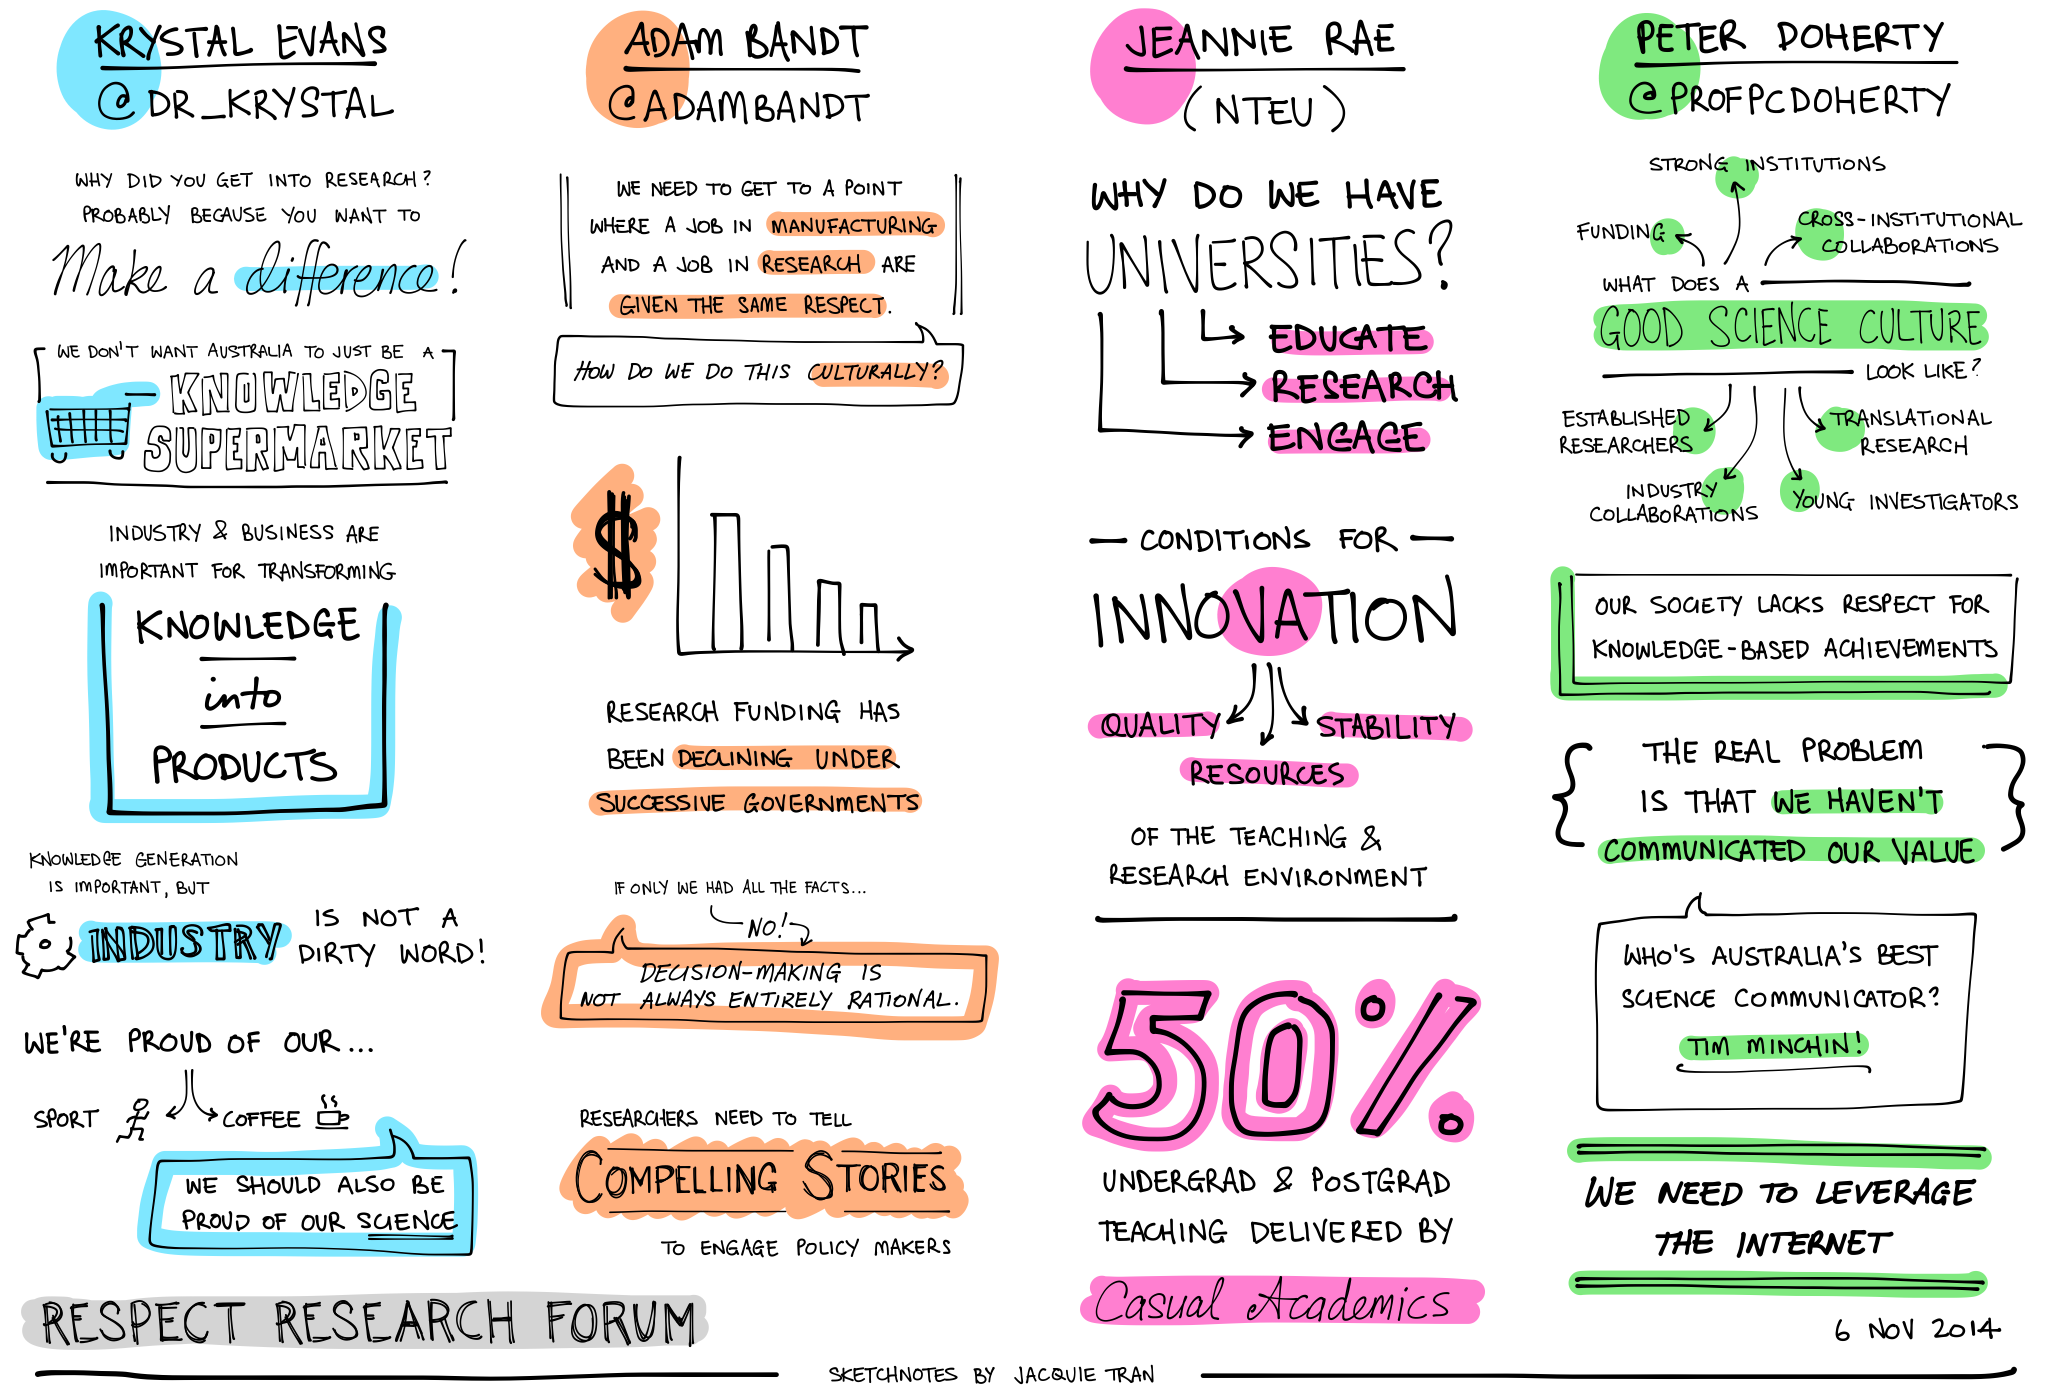 Respect Research Forum, 6th November 2014 | Sketchnotes by Jacquie Tran